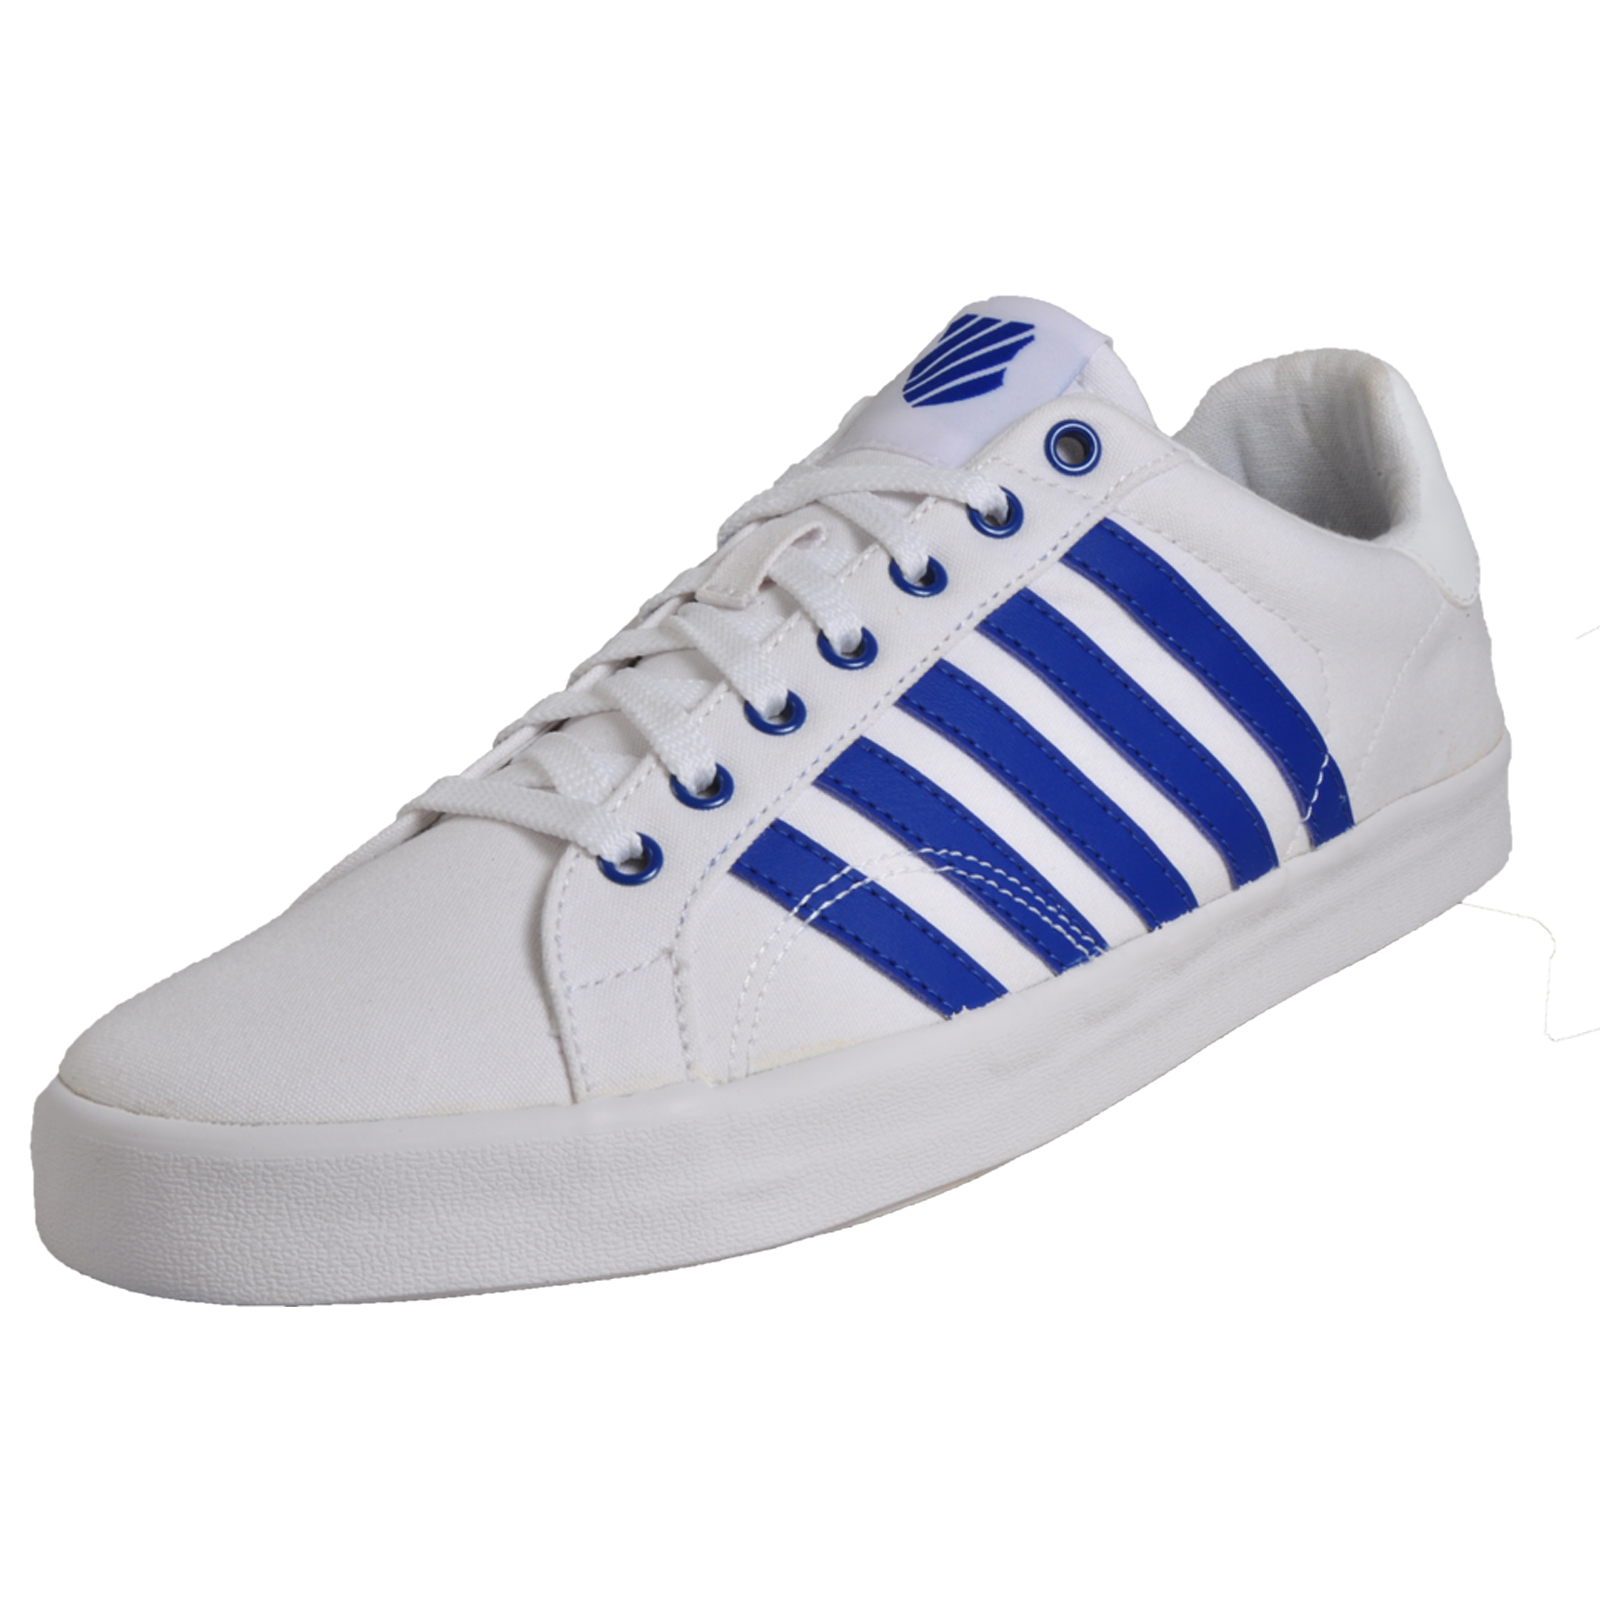 8d254c9ecab9 Details about K Swiss Belmont Men s Classic Vintage Retro Trainers Canvas  Sneakers White